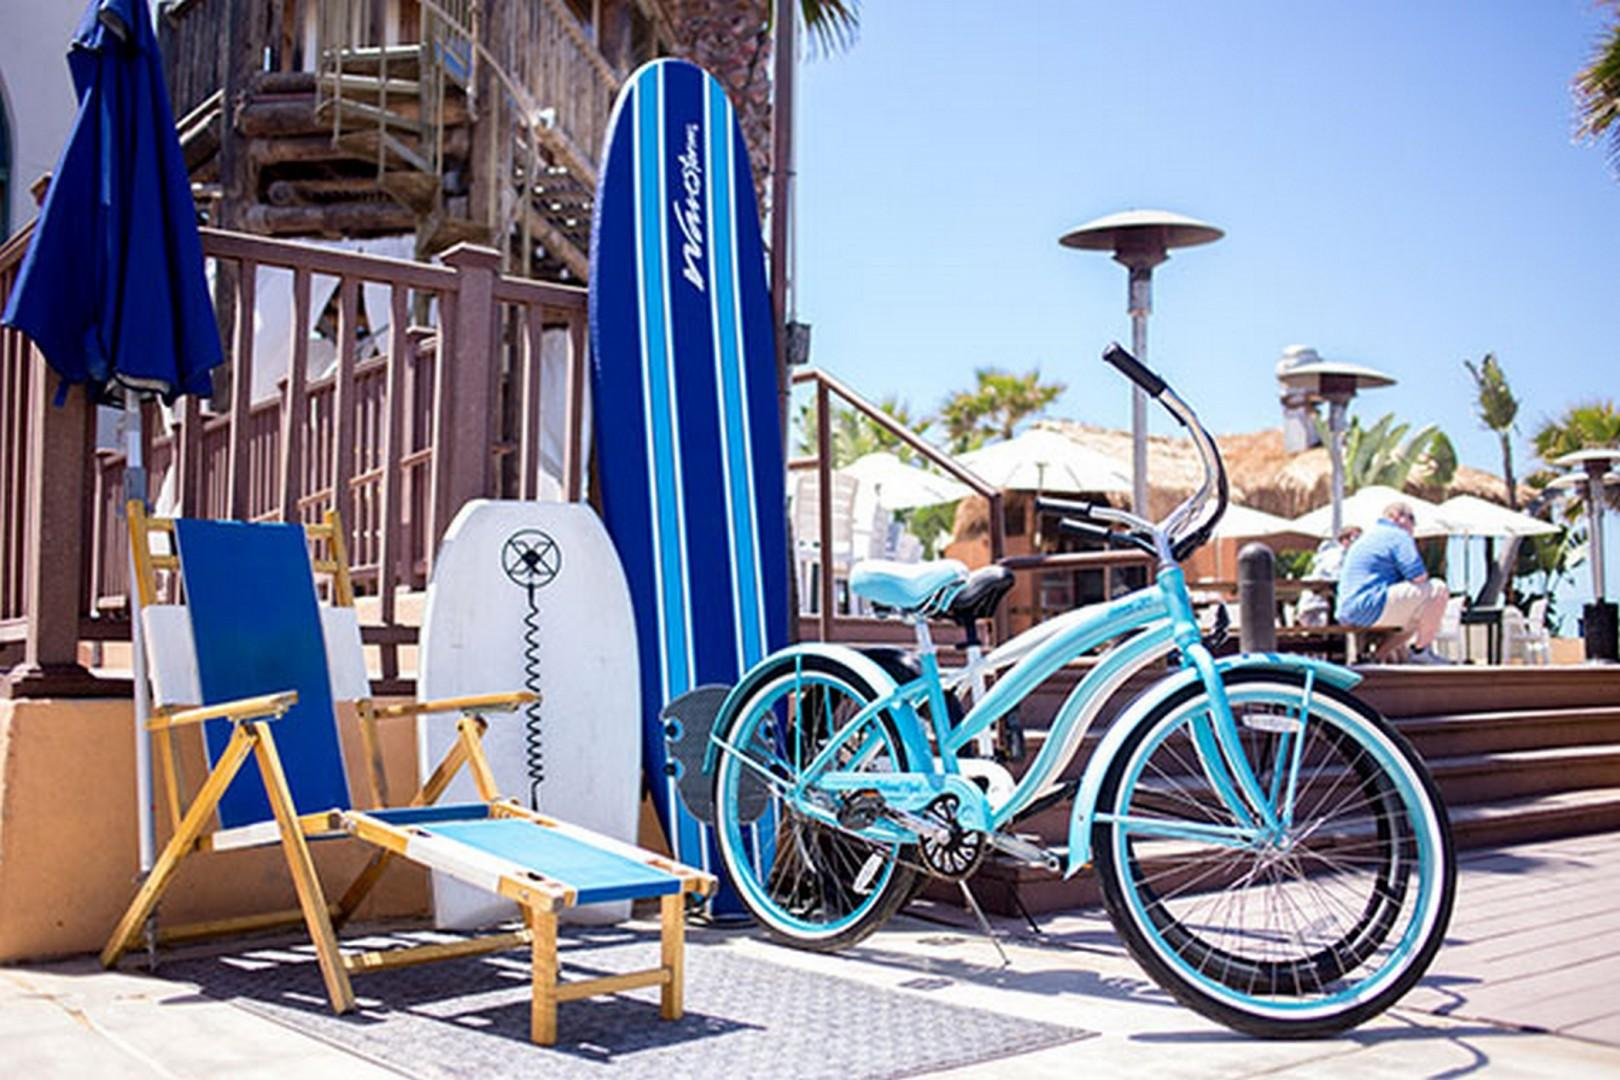 Mission Beach Bike and Surfboard rentals